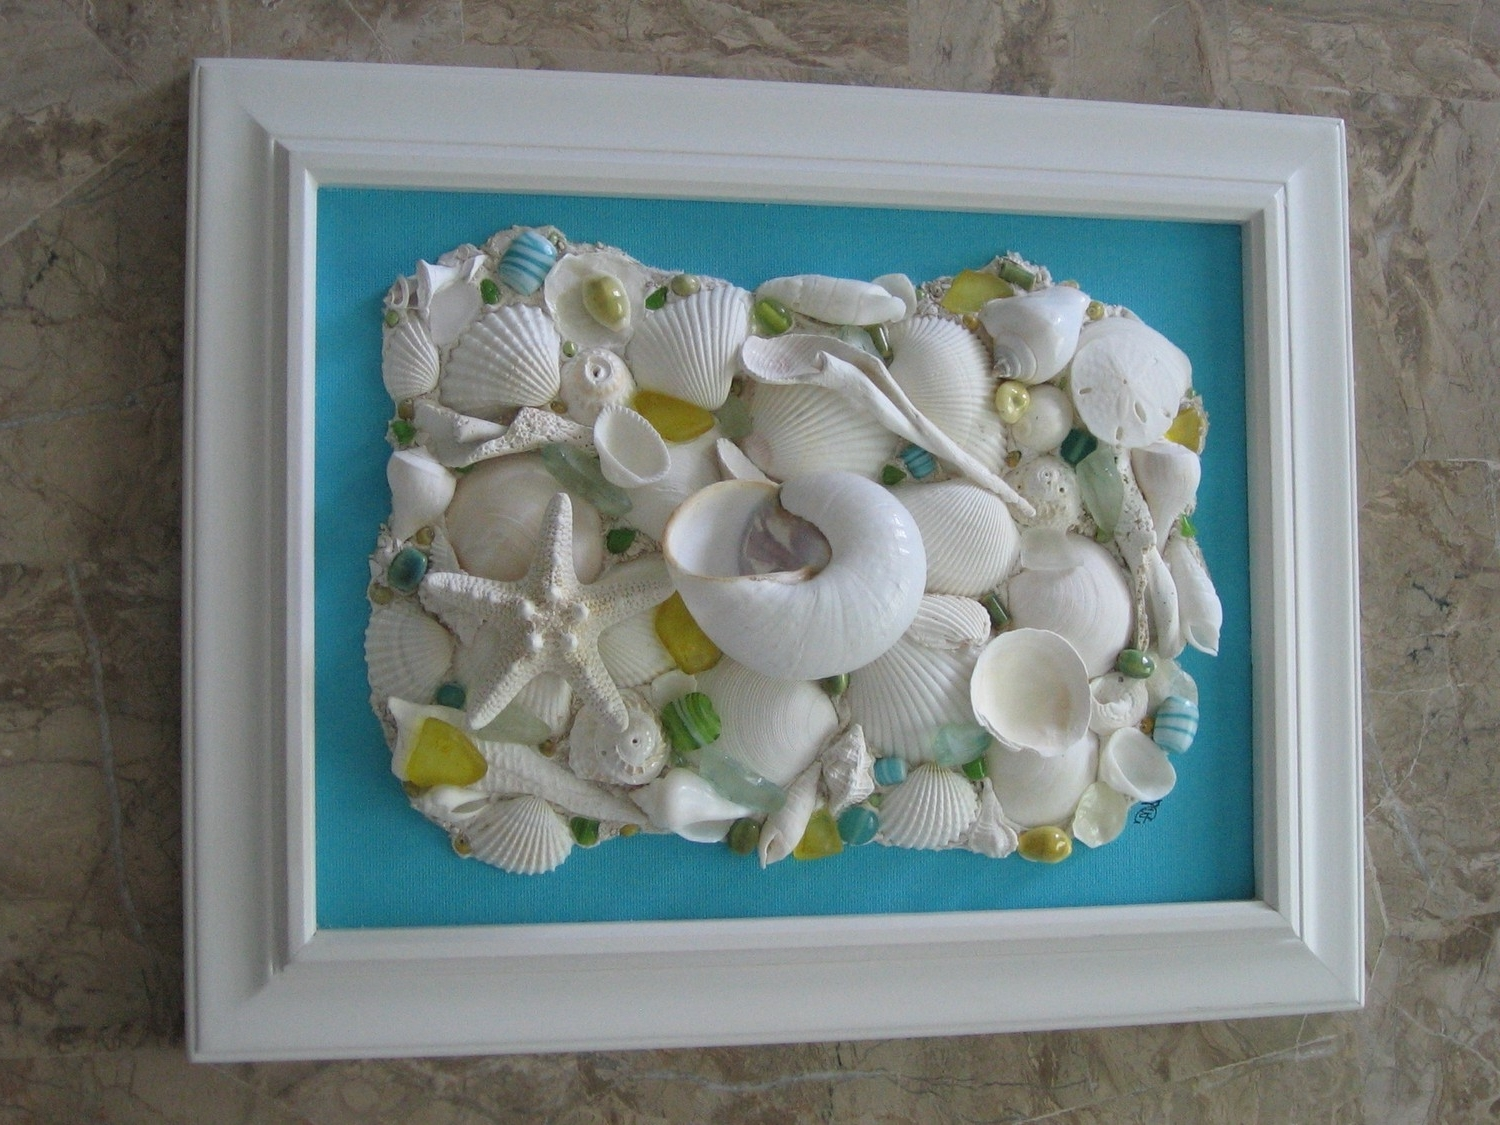 Beautiful Habitat: Framed Objects As Wall Art {Guest Post} Pertaining To Well Known Wall Art With Seashells (View 1 of 15)